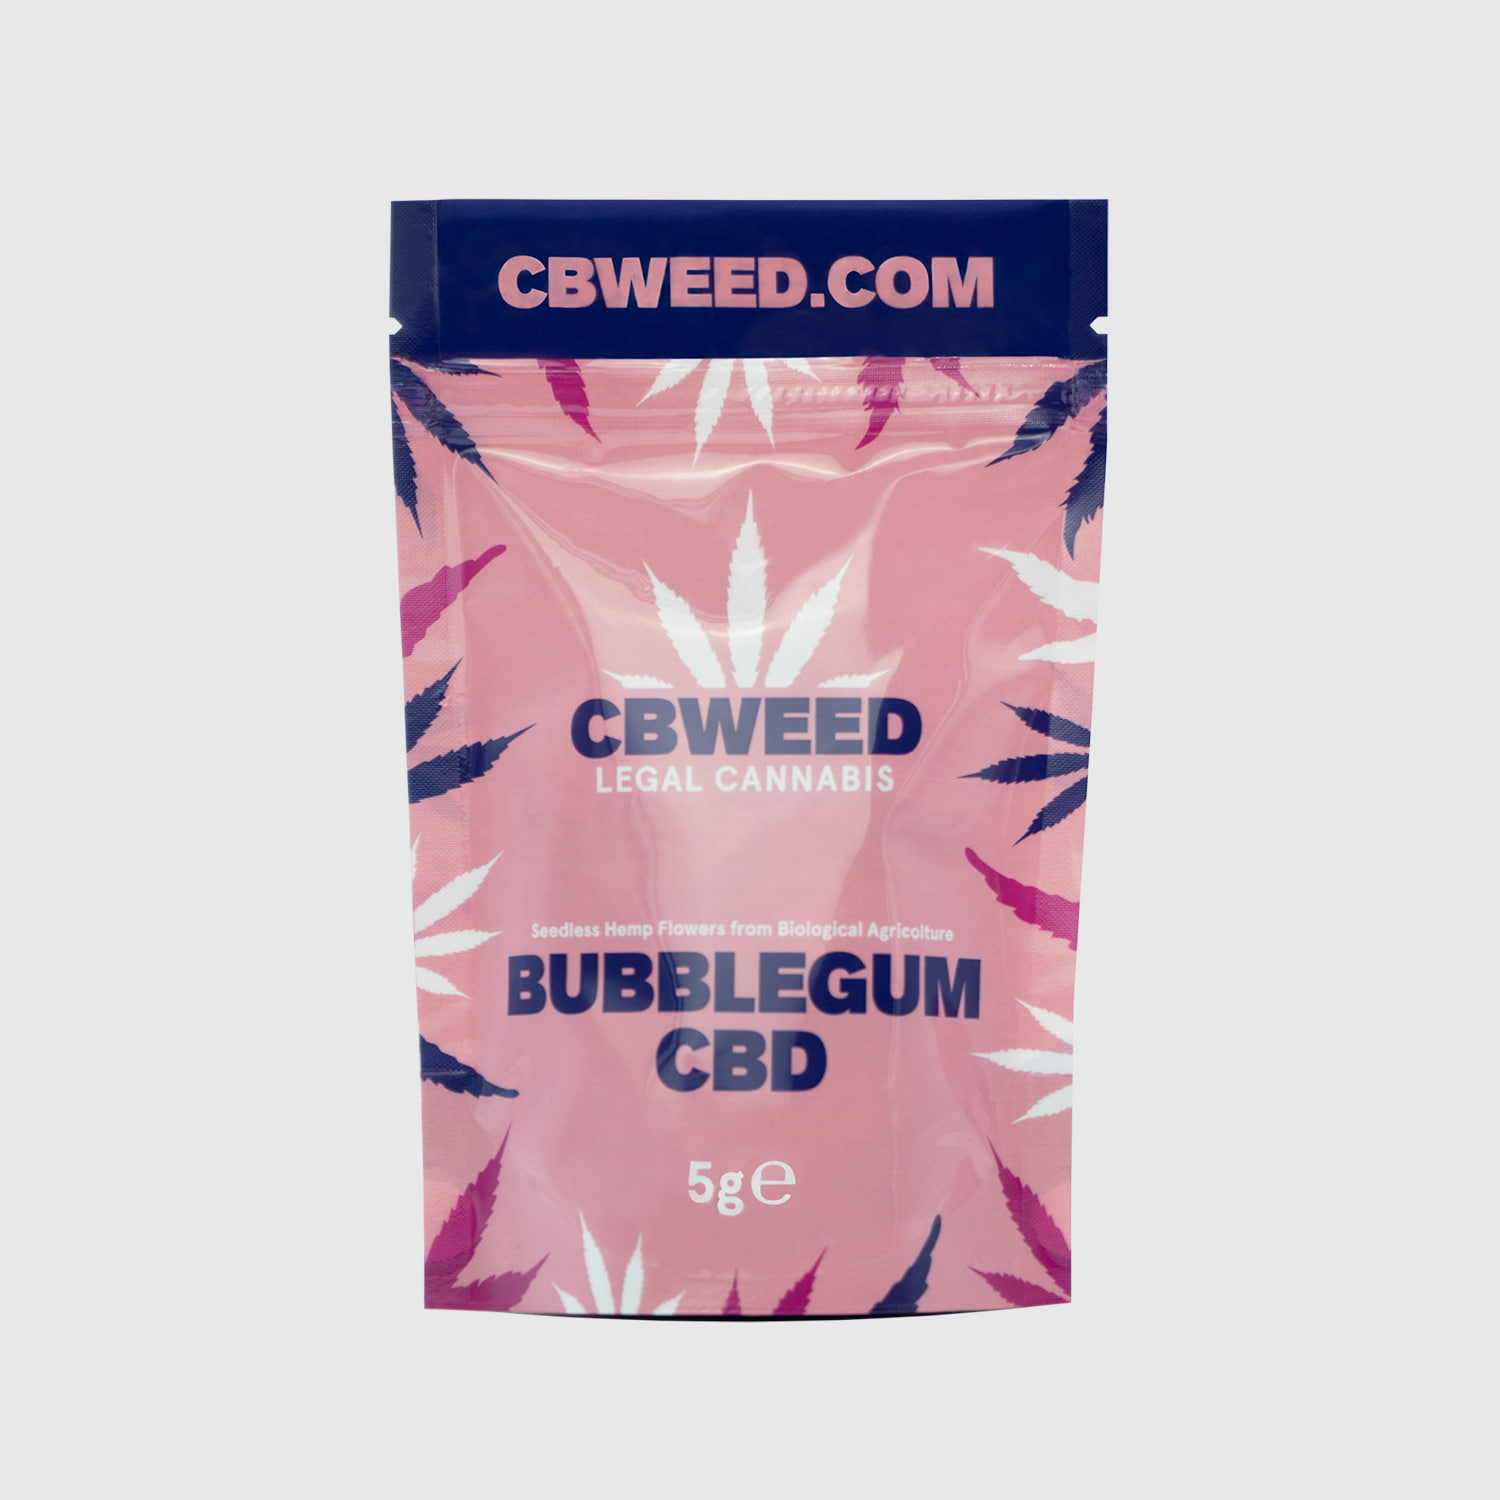 Cannabis Light Cbweed Bubblegum CBD – 5g EU